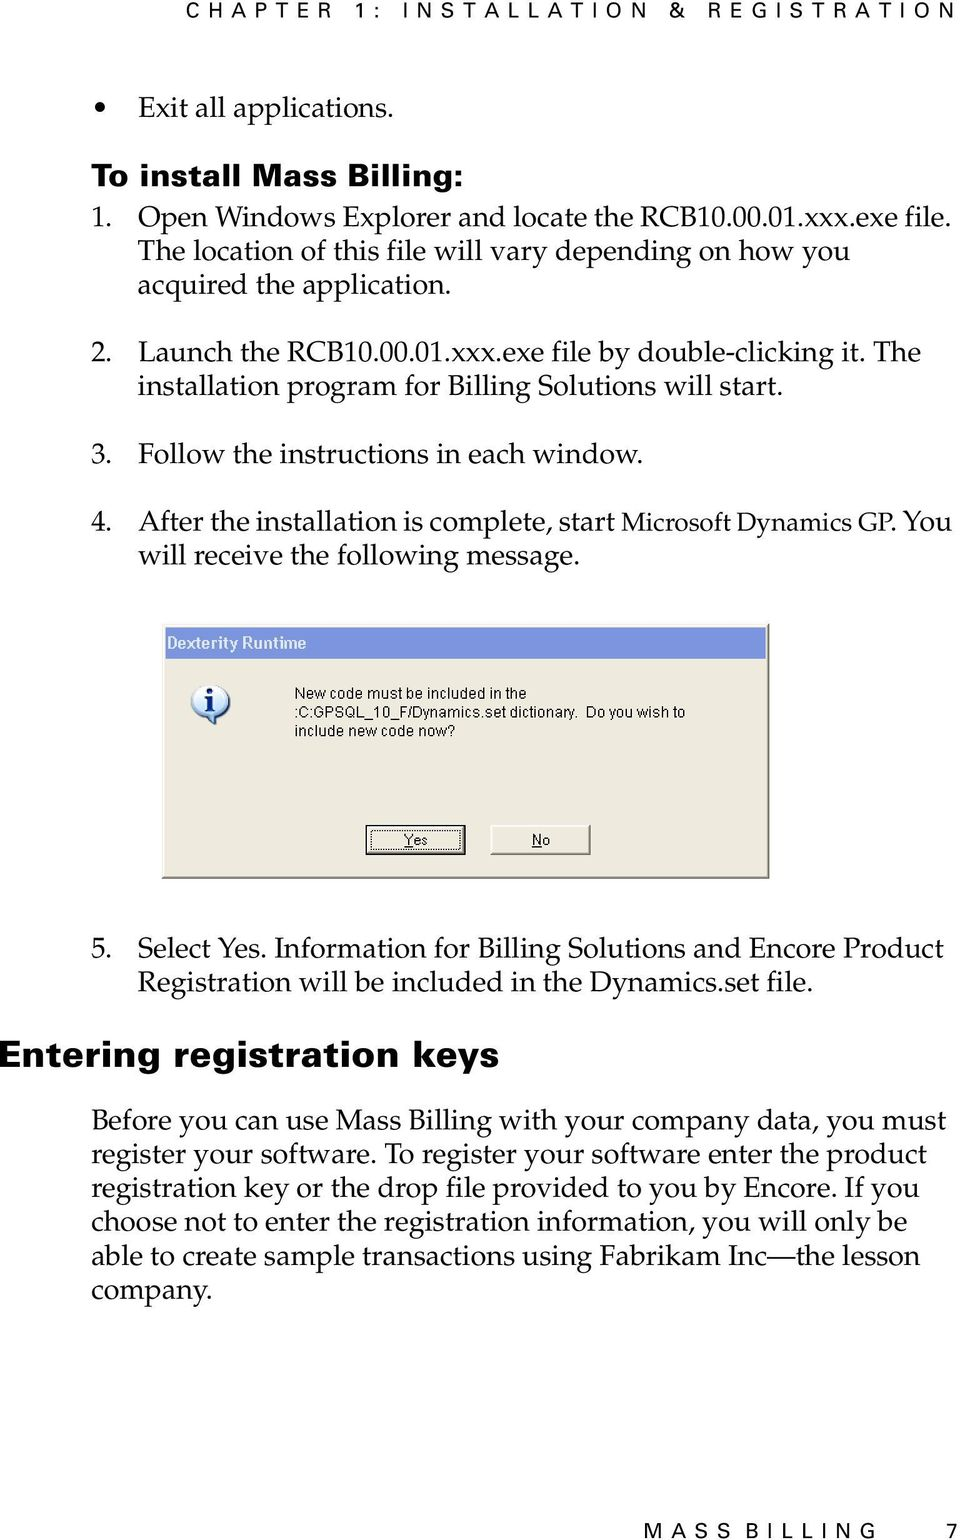 The installation program for Billing Solutions will start. 3. Follow the instructions in each window. 4. After the installation is complete, start Microsoft Dynamics GP.